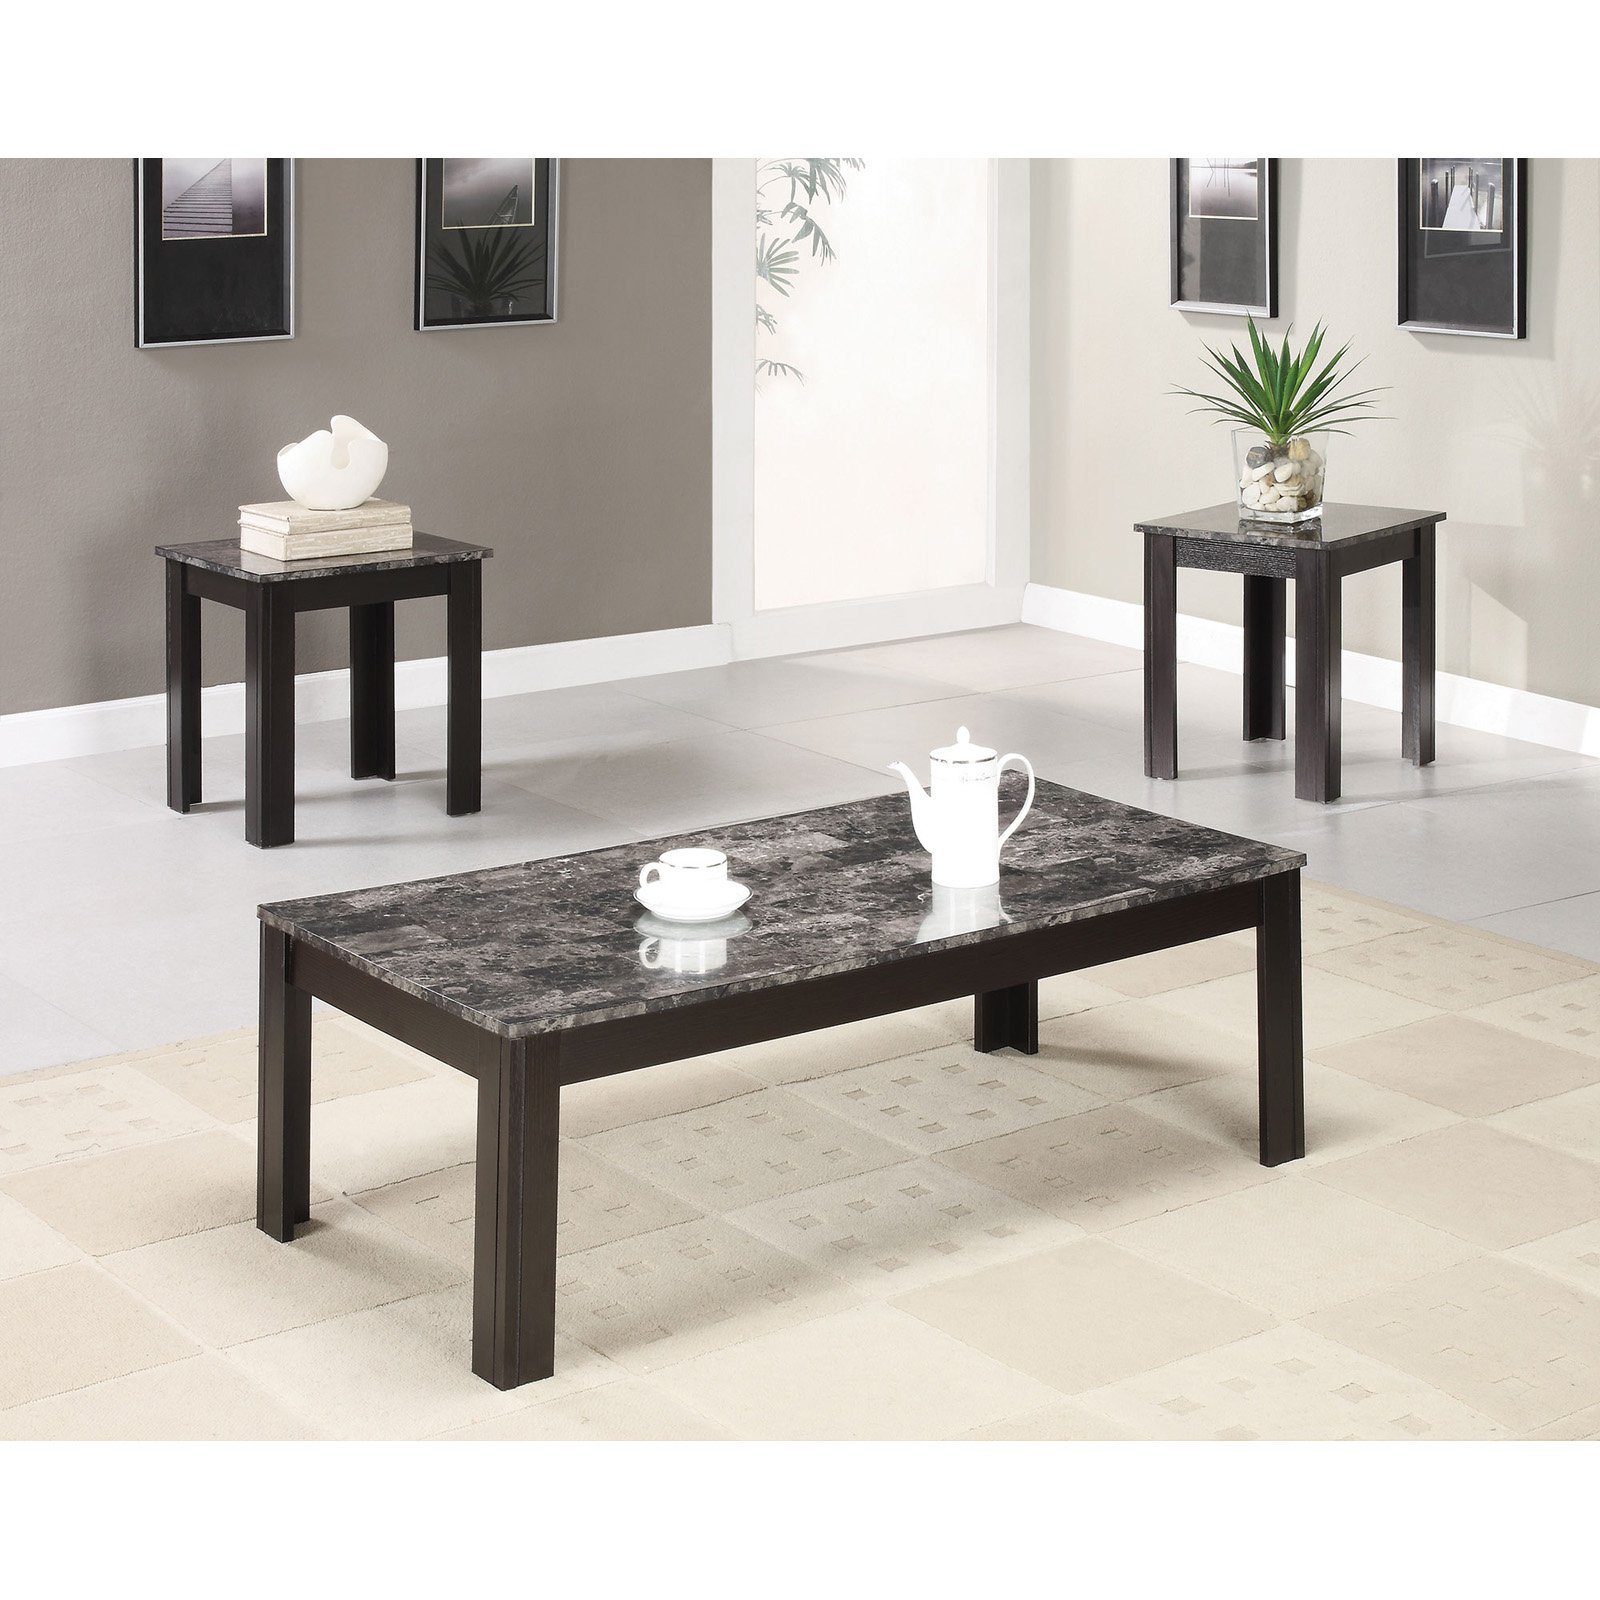 Coaster 3-Piece Table Set, Grey Marble Finish